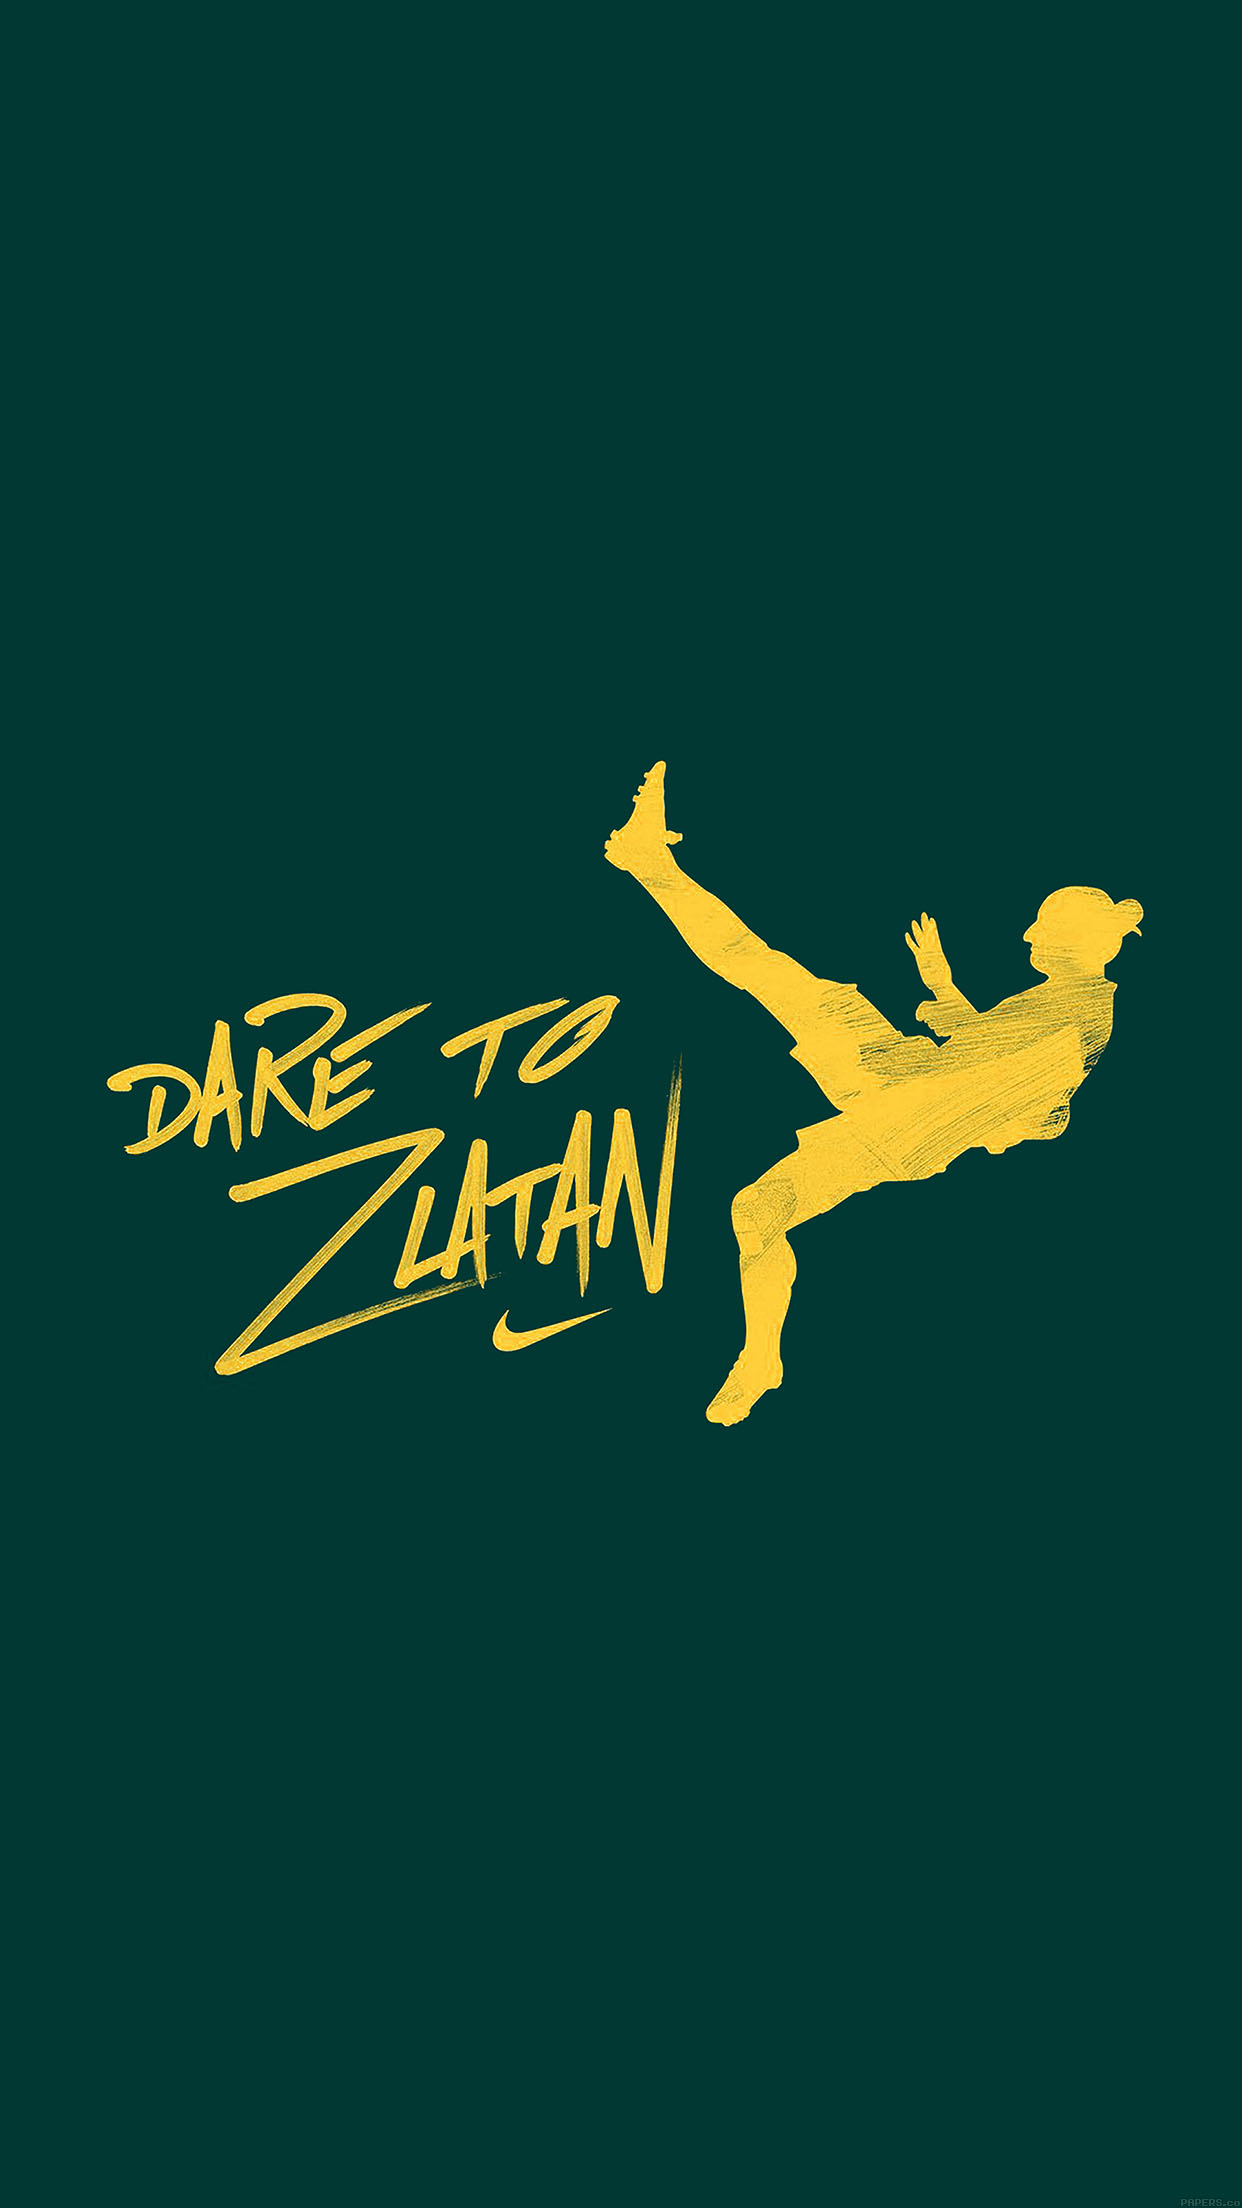 Wallpaper Cute For Iphone 6 Plus Aa53 Dare To Zlatan Green Sports Art Papers Co